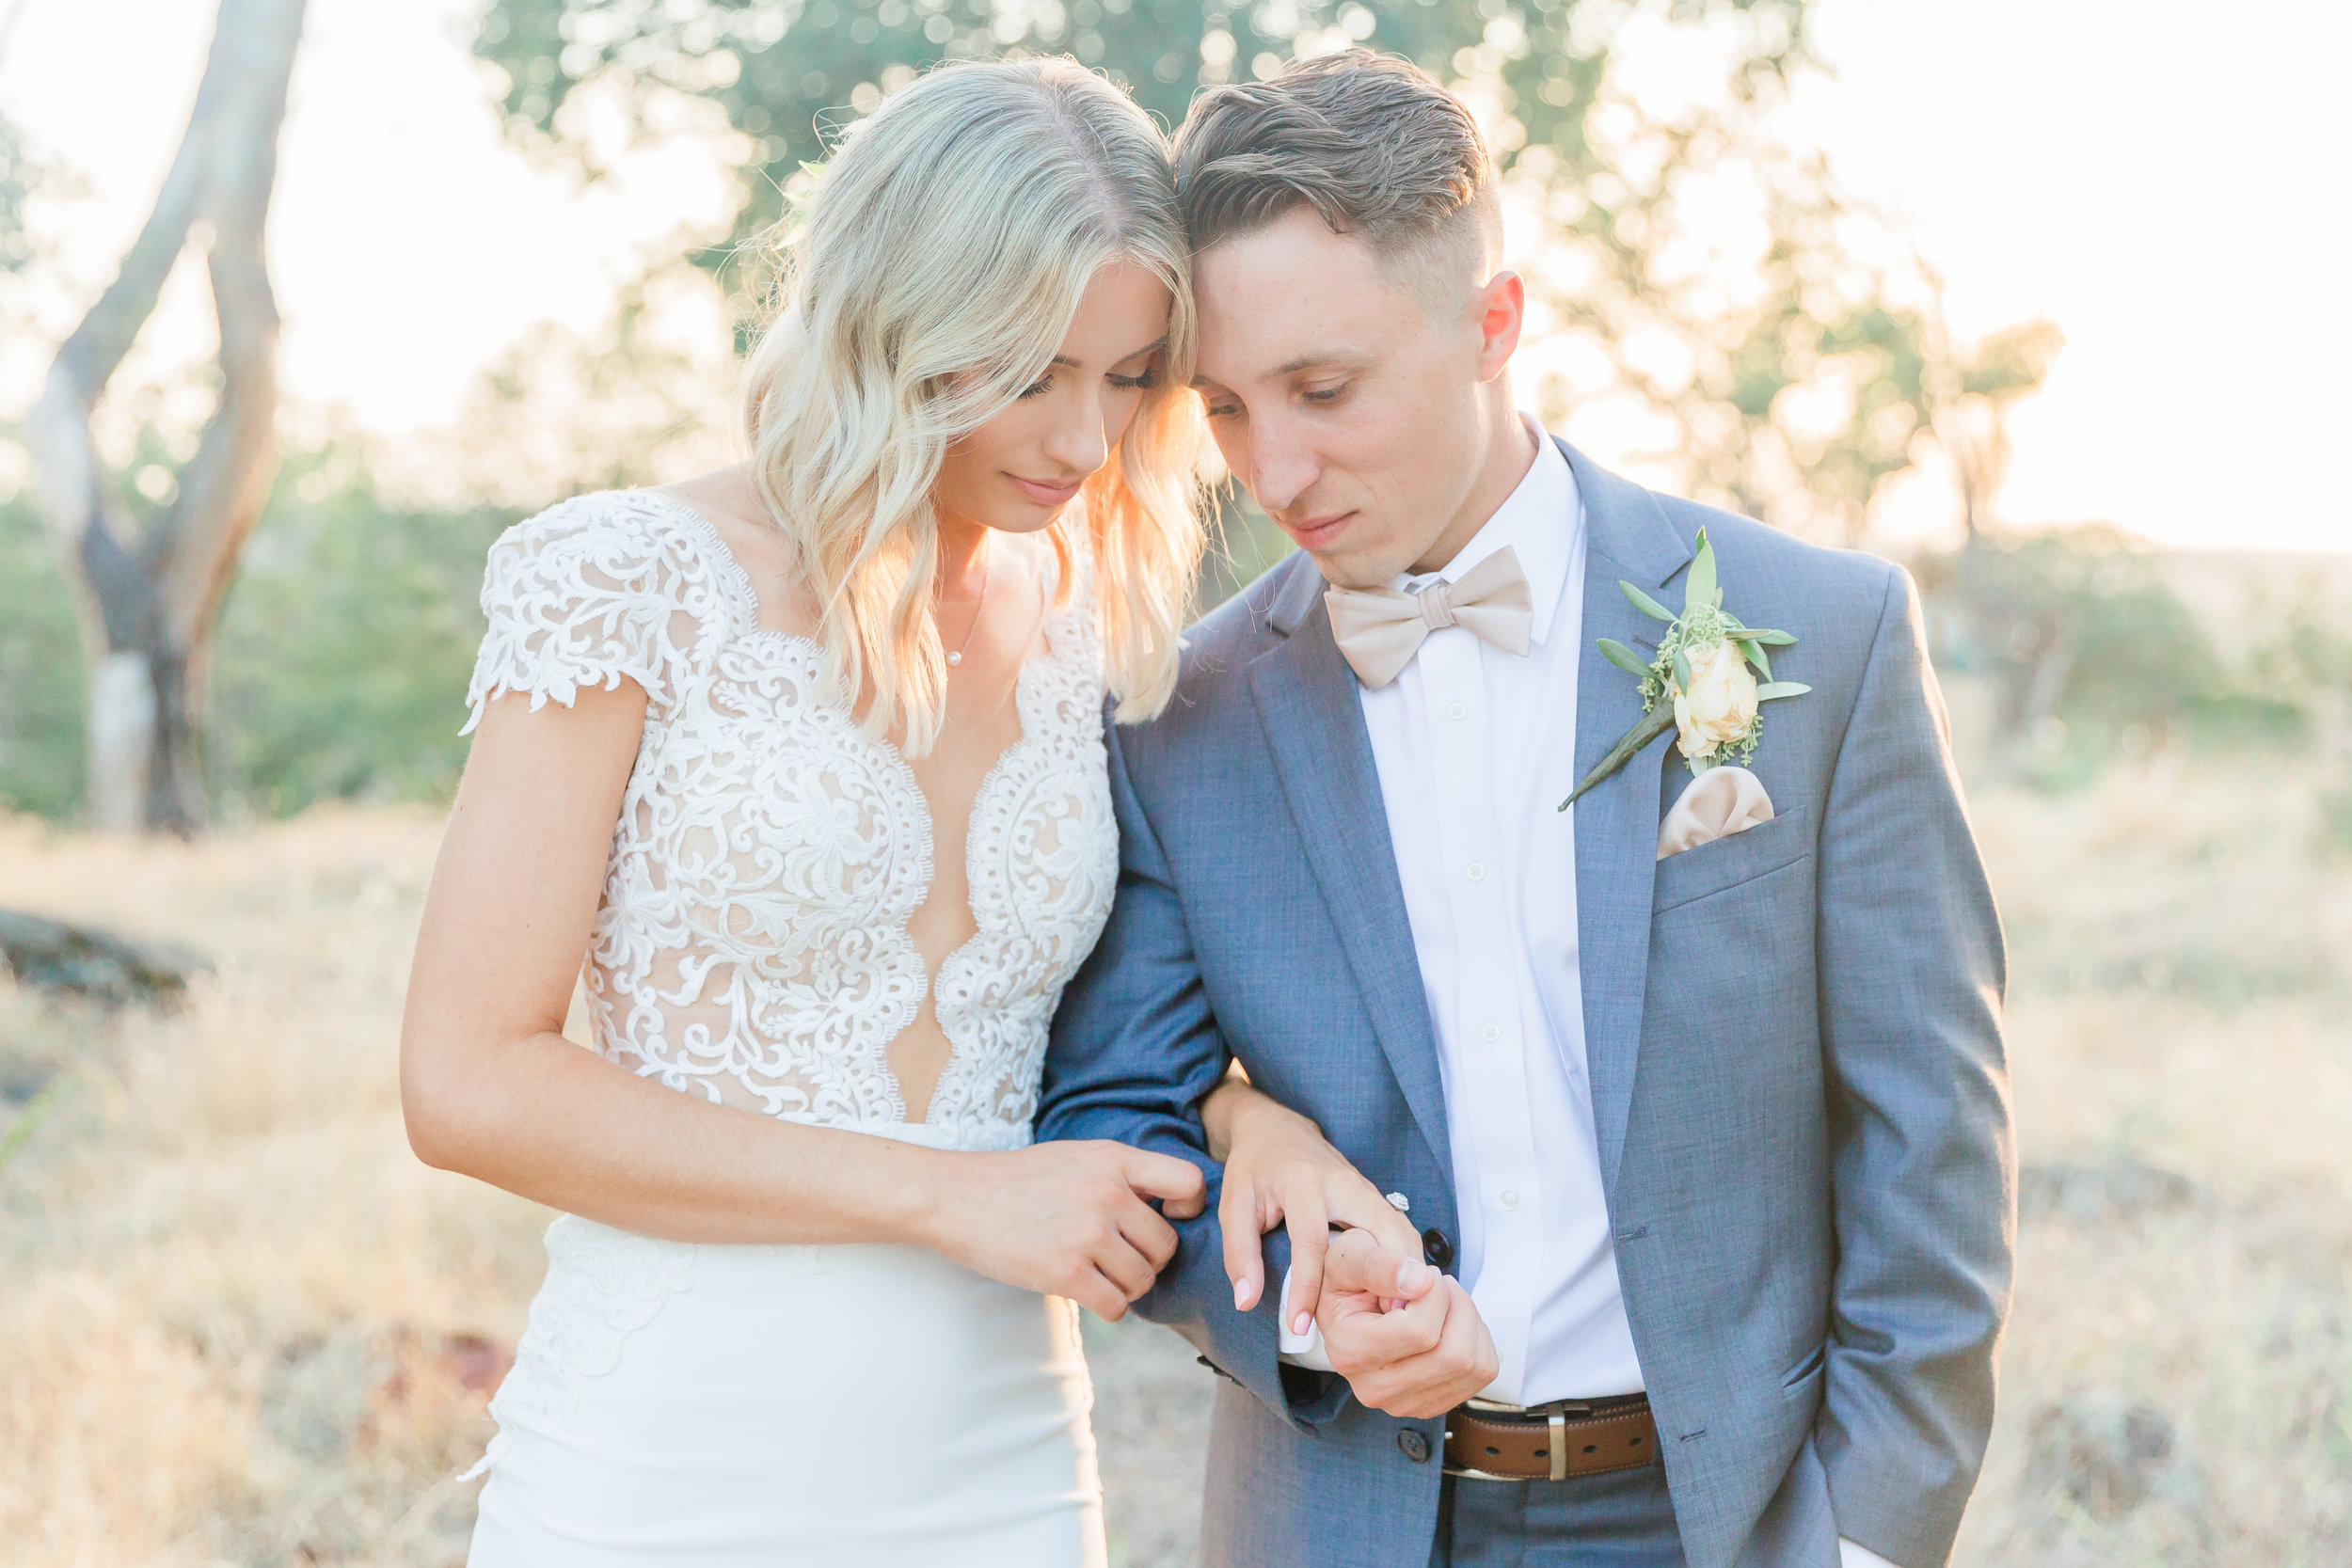 Kaitlynn and Colby - Married - Sneaks - Lauren Alisse Photography-100.jpg